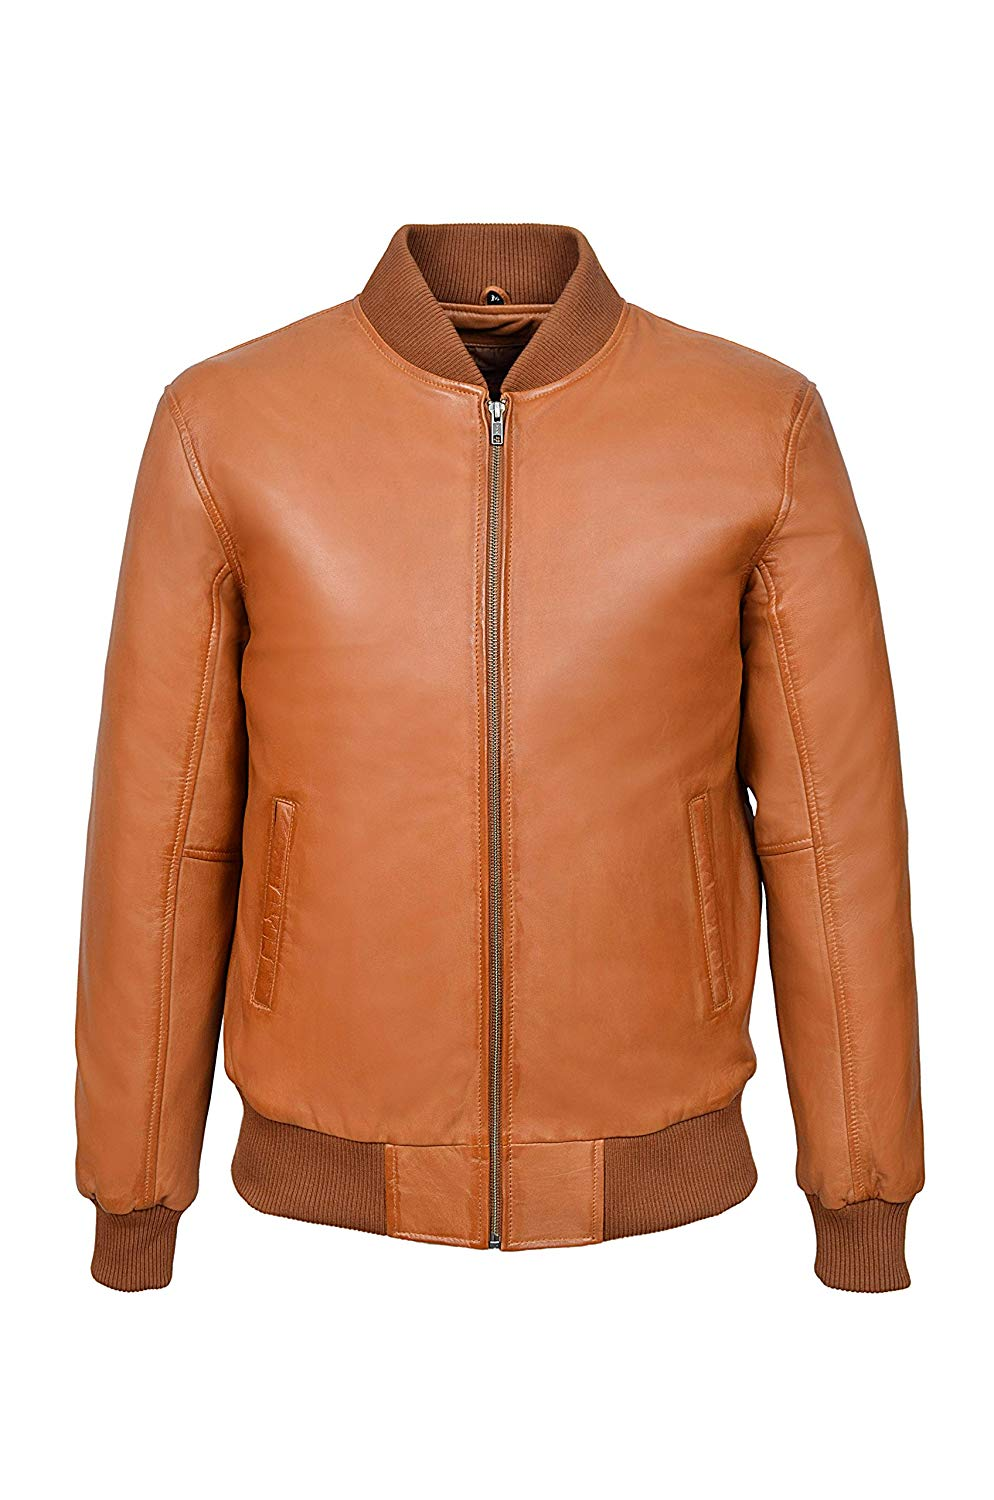 Smart Range 70's Classic Bomber Men's Tan Plain Napa Wax Biker Style Italian Fitted Real Leather Jacket 275P